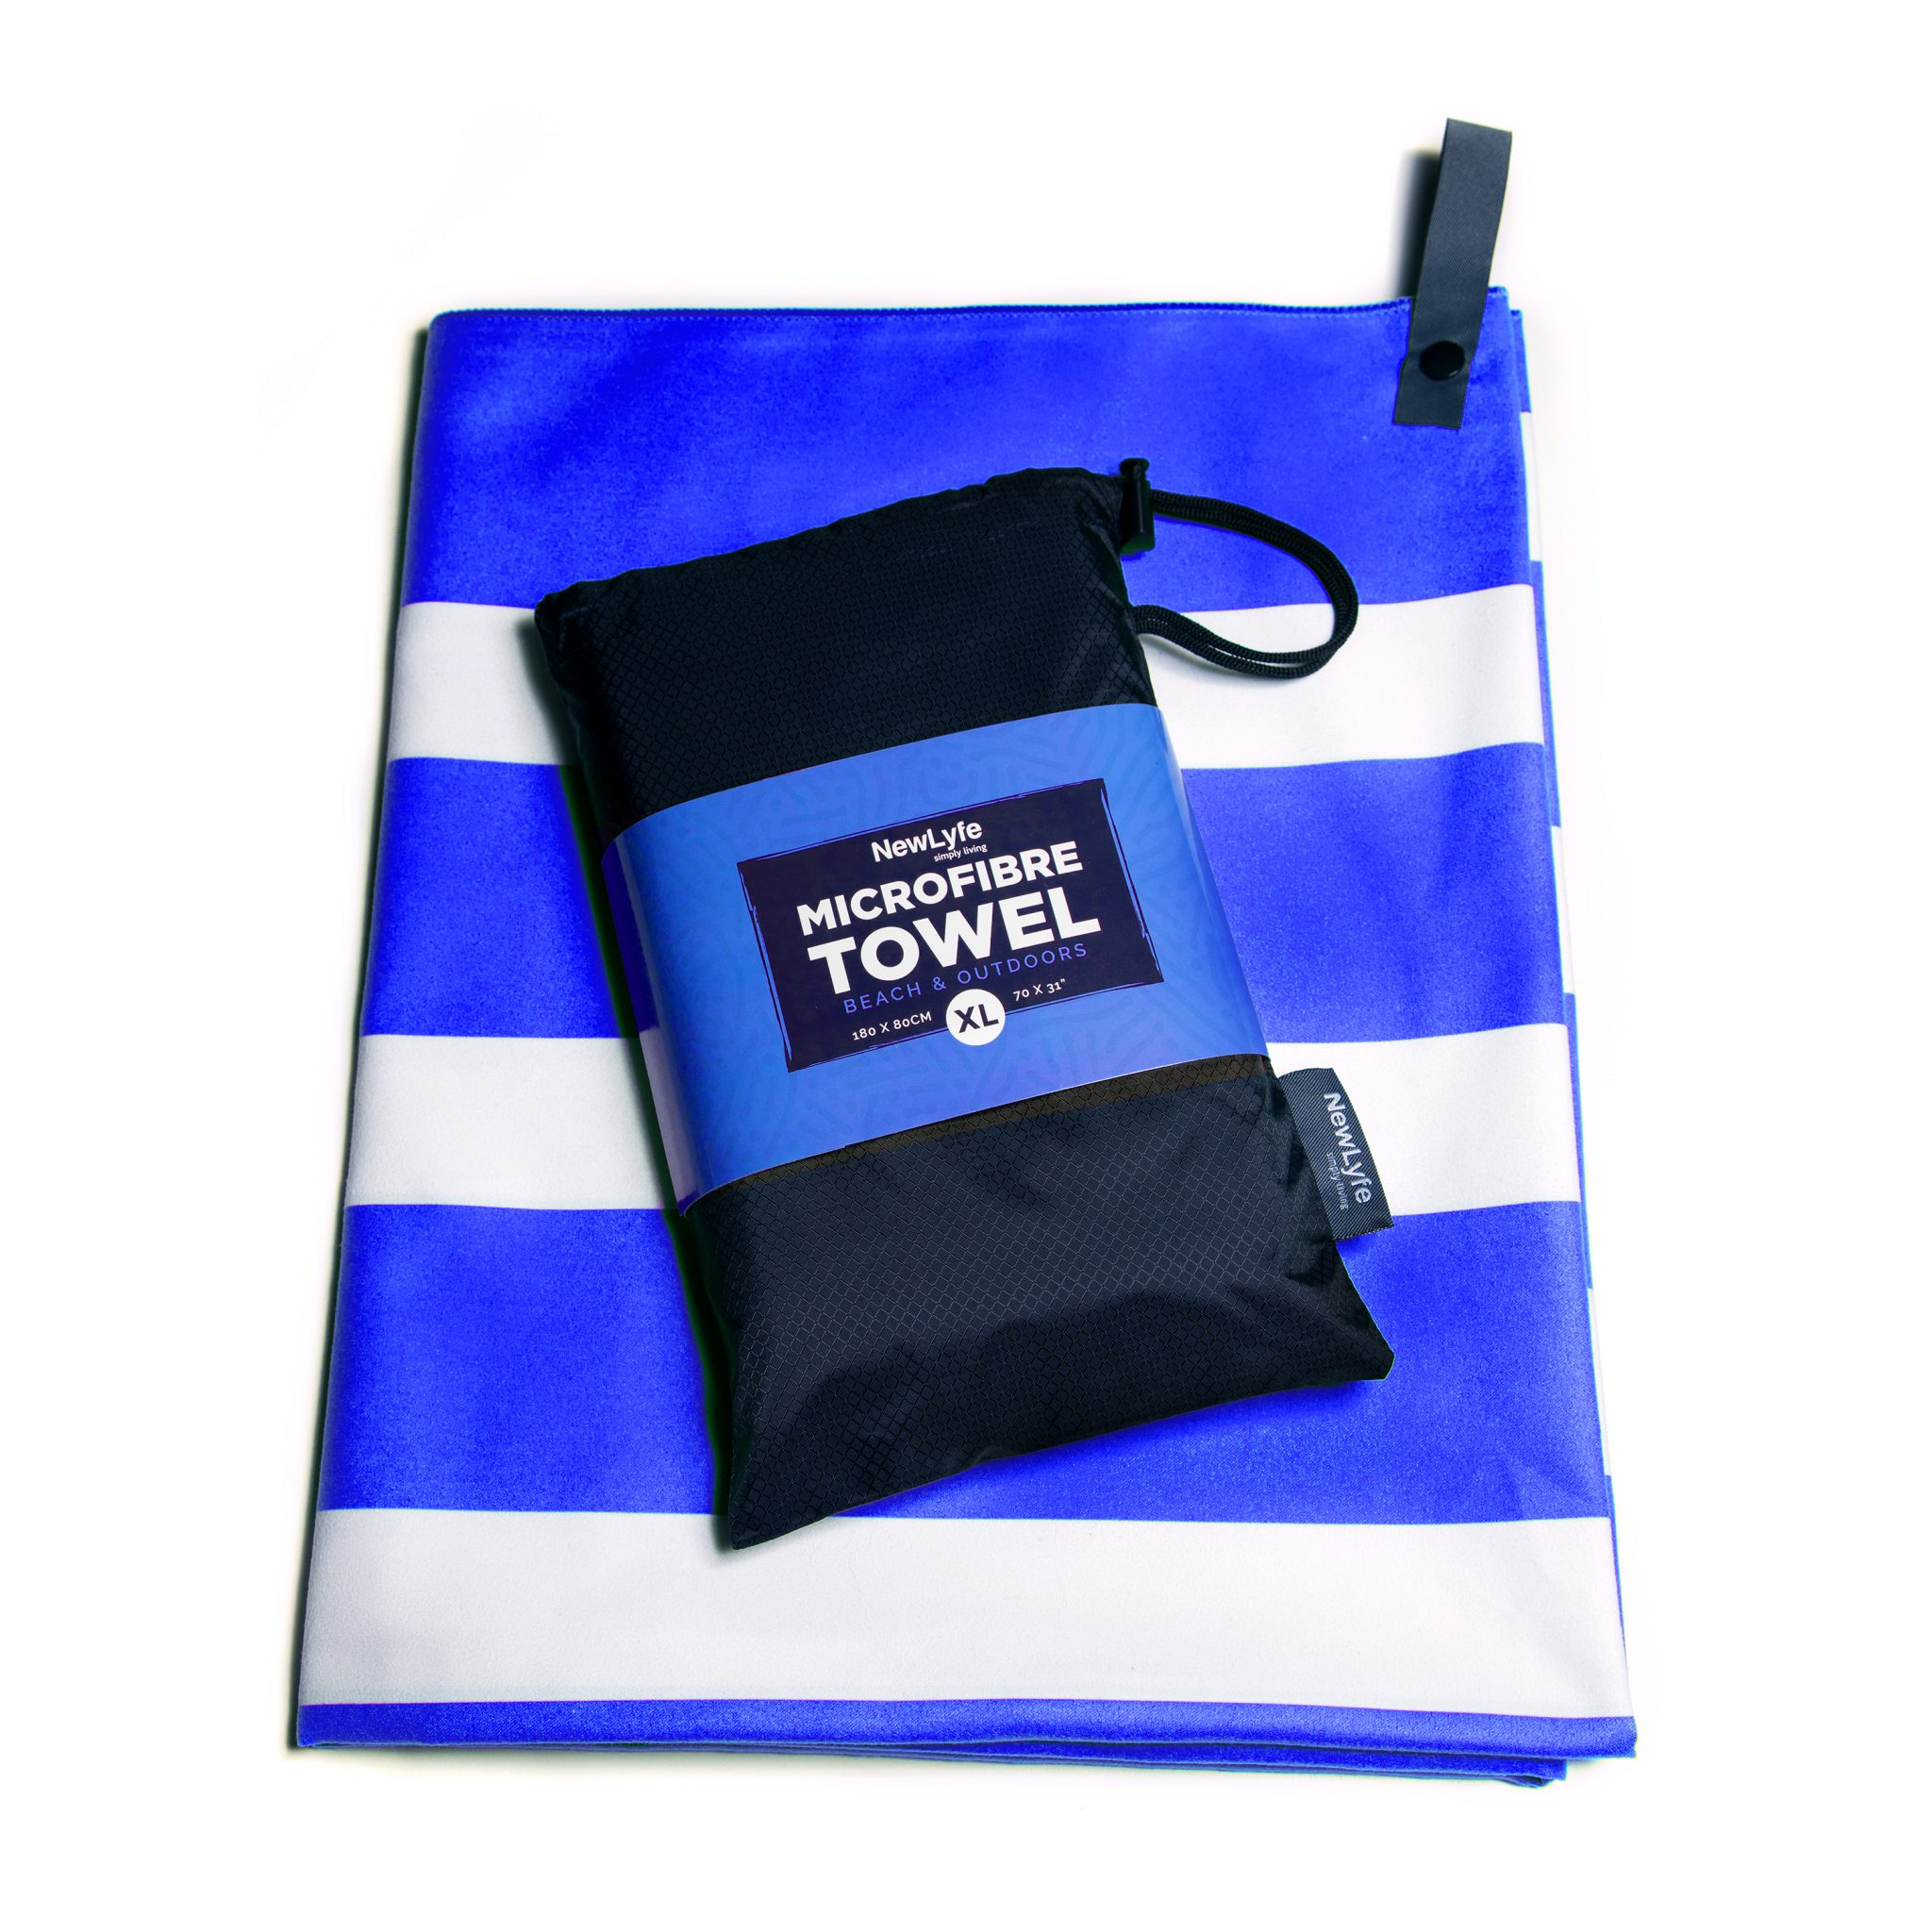 Big surprise in little stocking stuffers - a beach towel that fits in our family's standard stockings.